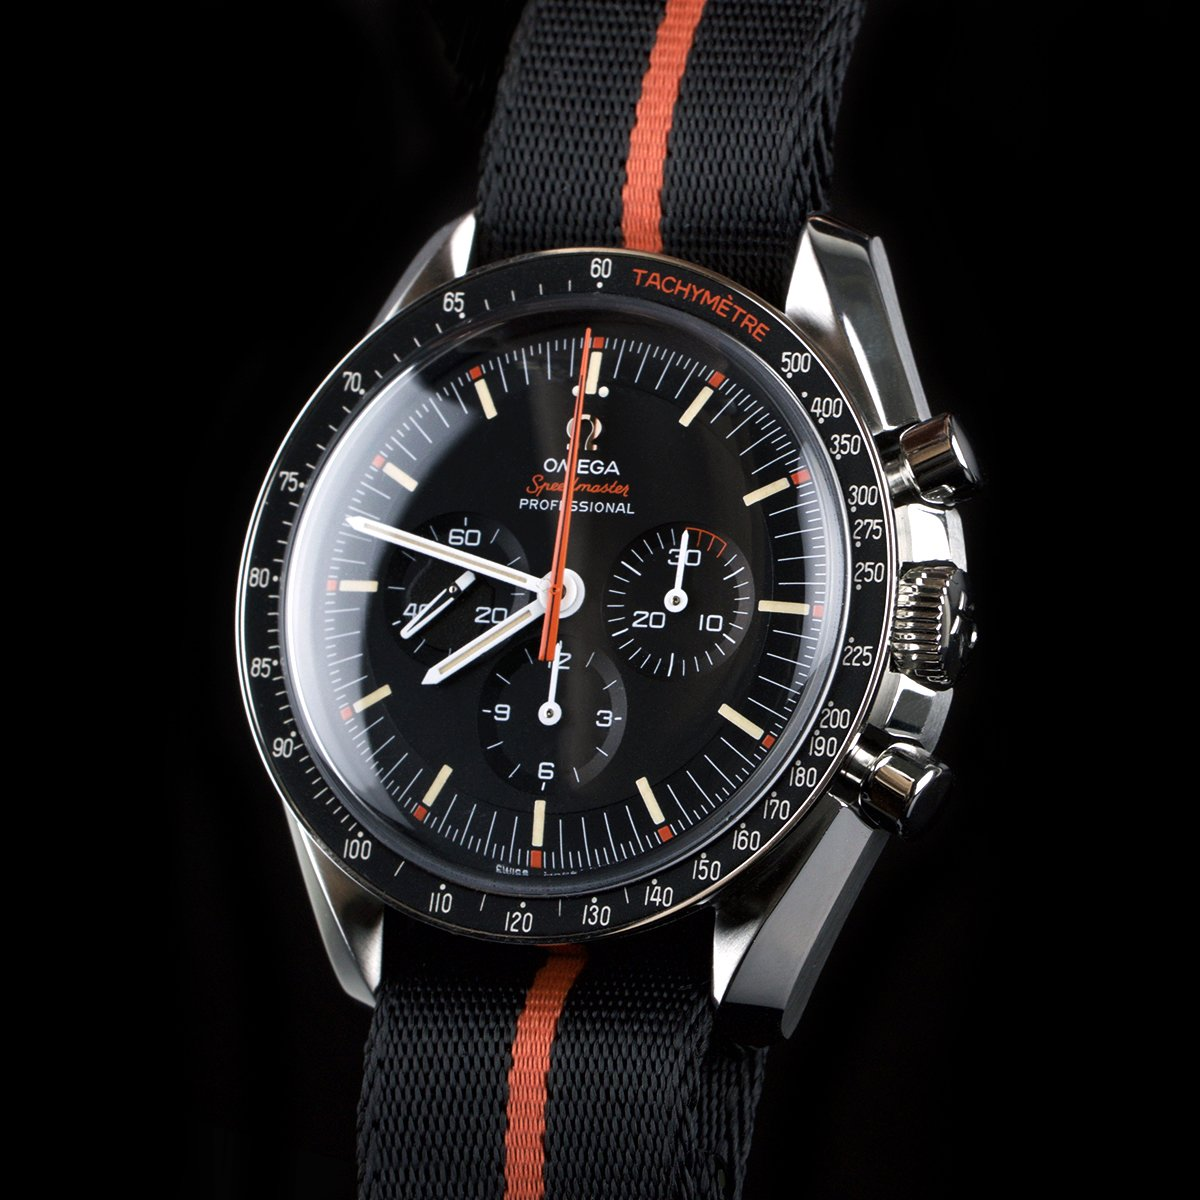 e86740caf109 Photo of Omega Speedmaster Moonwatch Anniversary Limited Series Speedy  Tuesday Ultraman